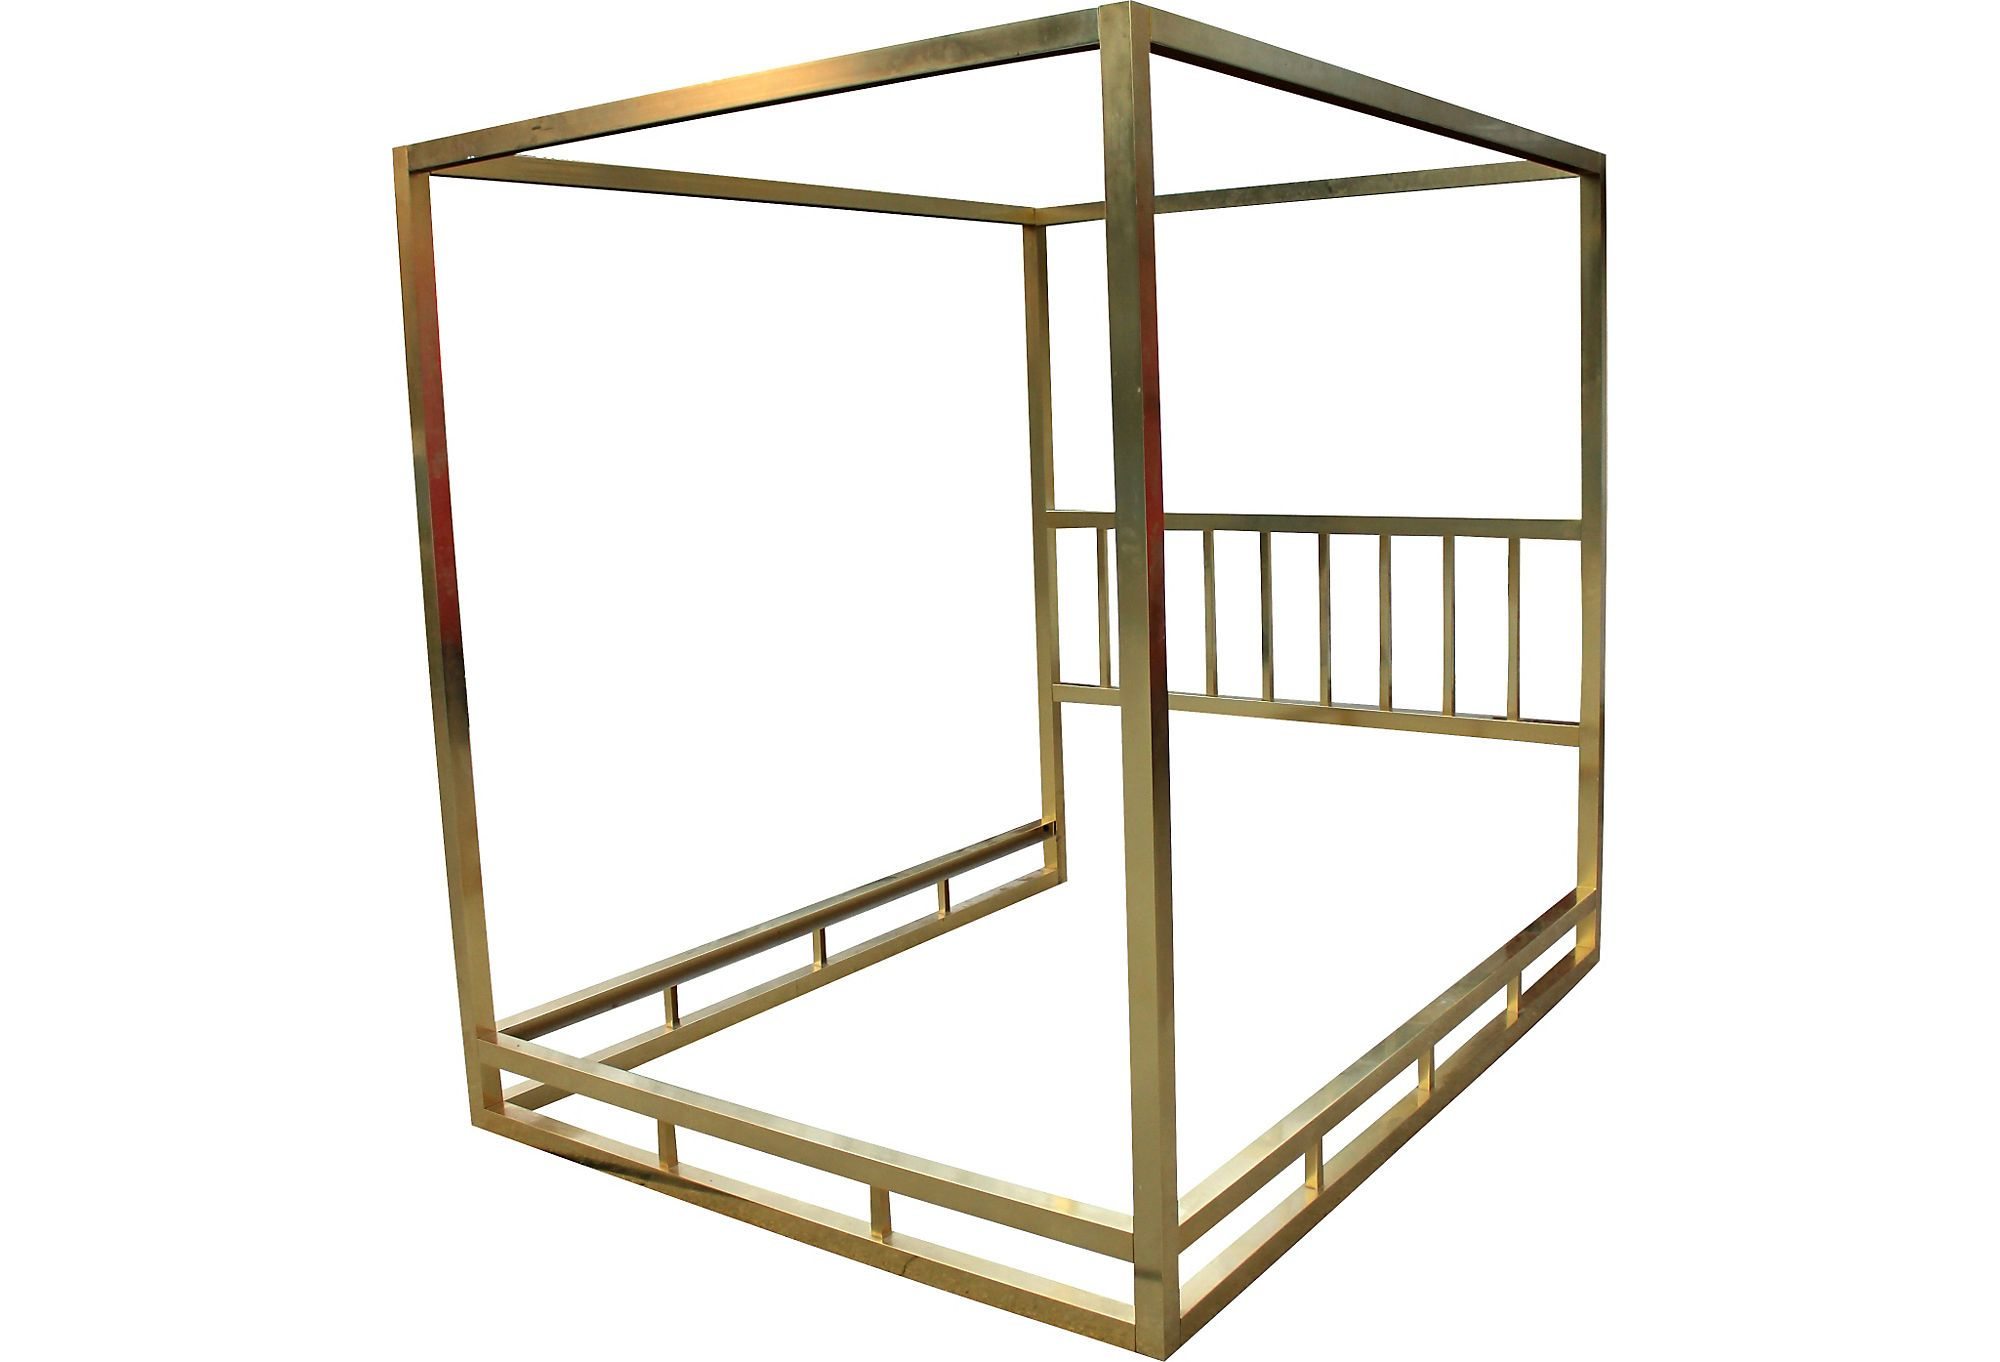 Best *Mg Brass Plated Canopy Bed Frame Unique Office Decor 400 x 300